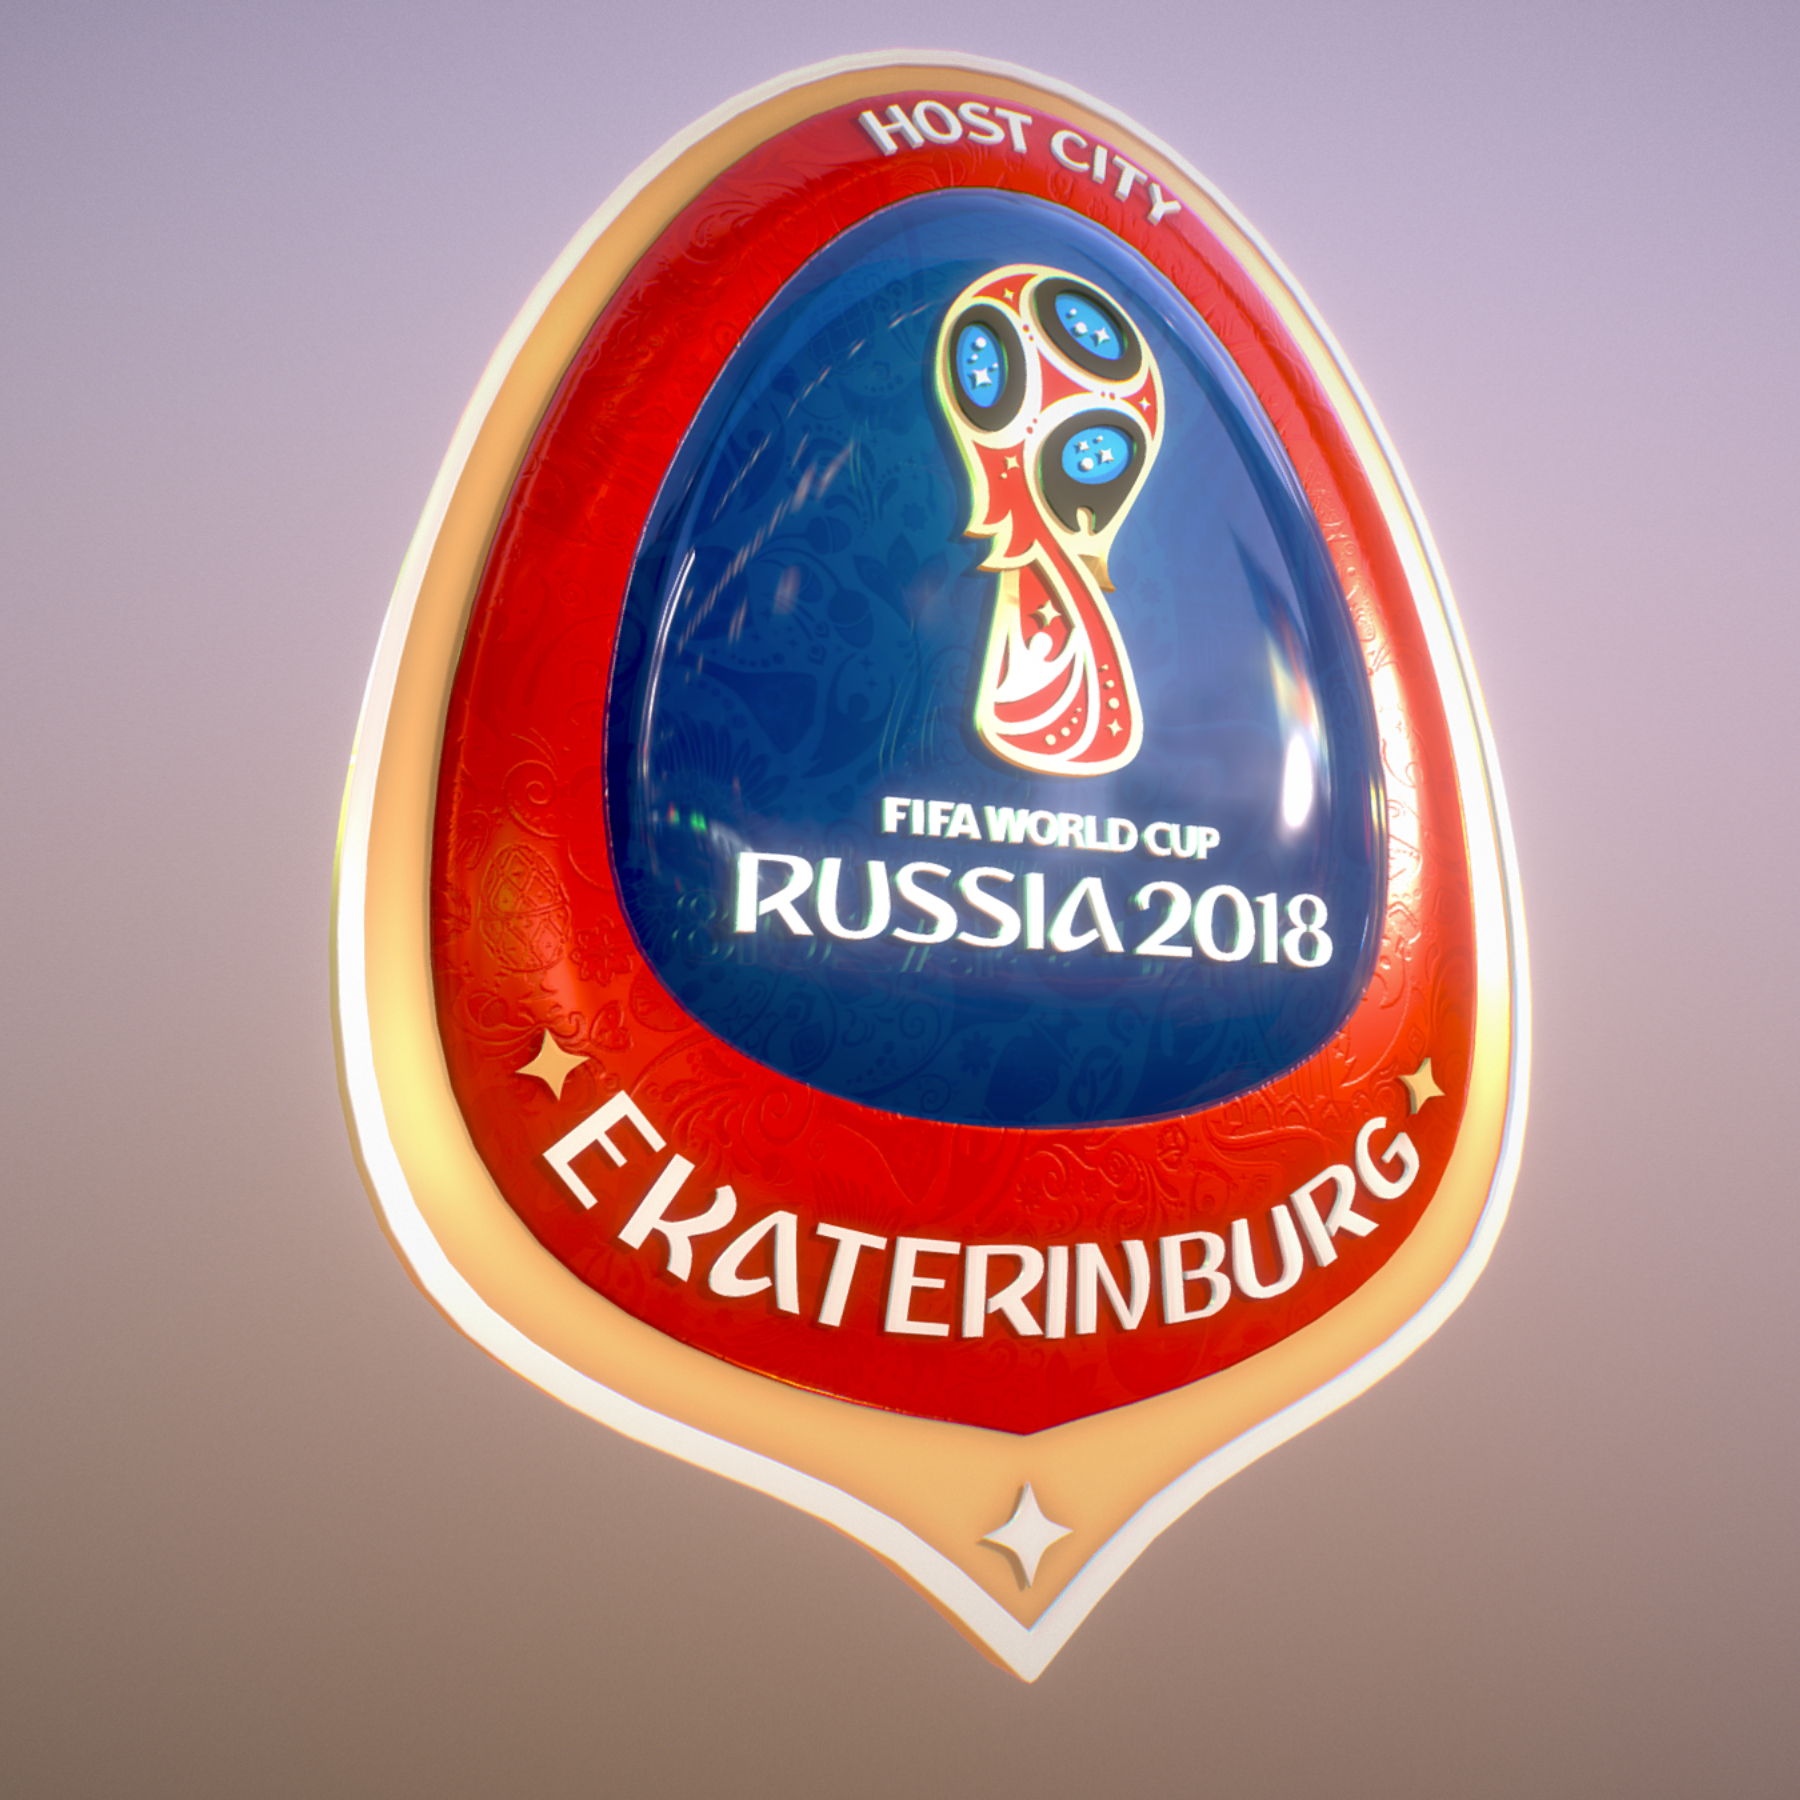 ekaterinburg city world cup russia 2018 symbol 3d model max  fbx jpeg jpg ma mb obj 271728